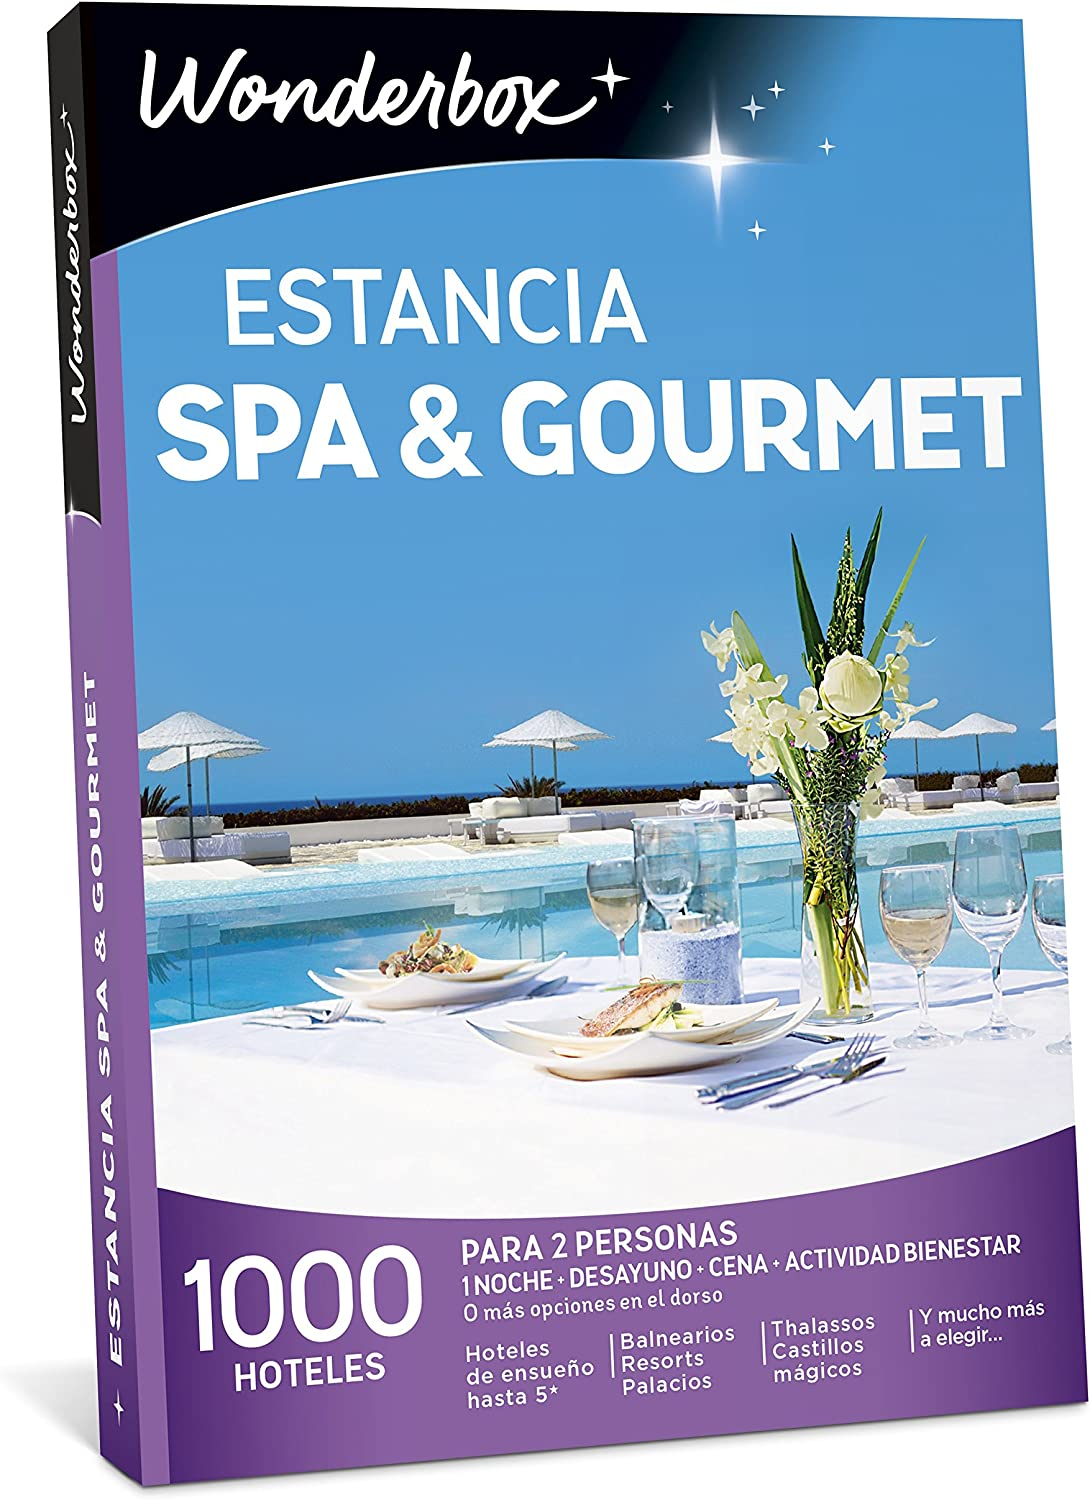 wonderbox estancia spa y gourmet